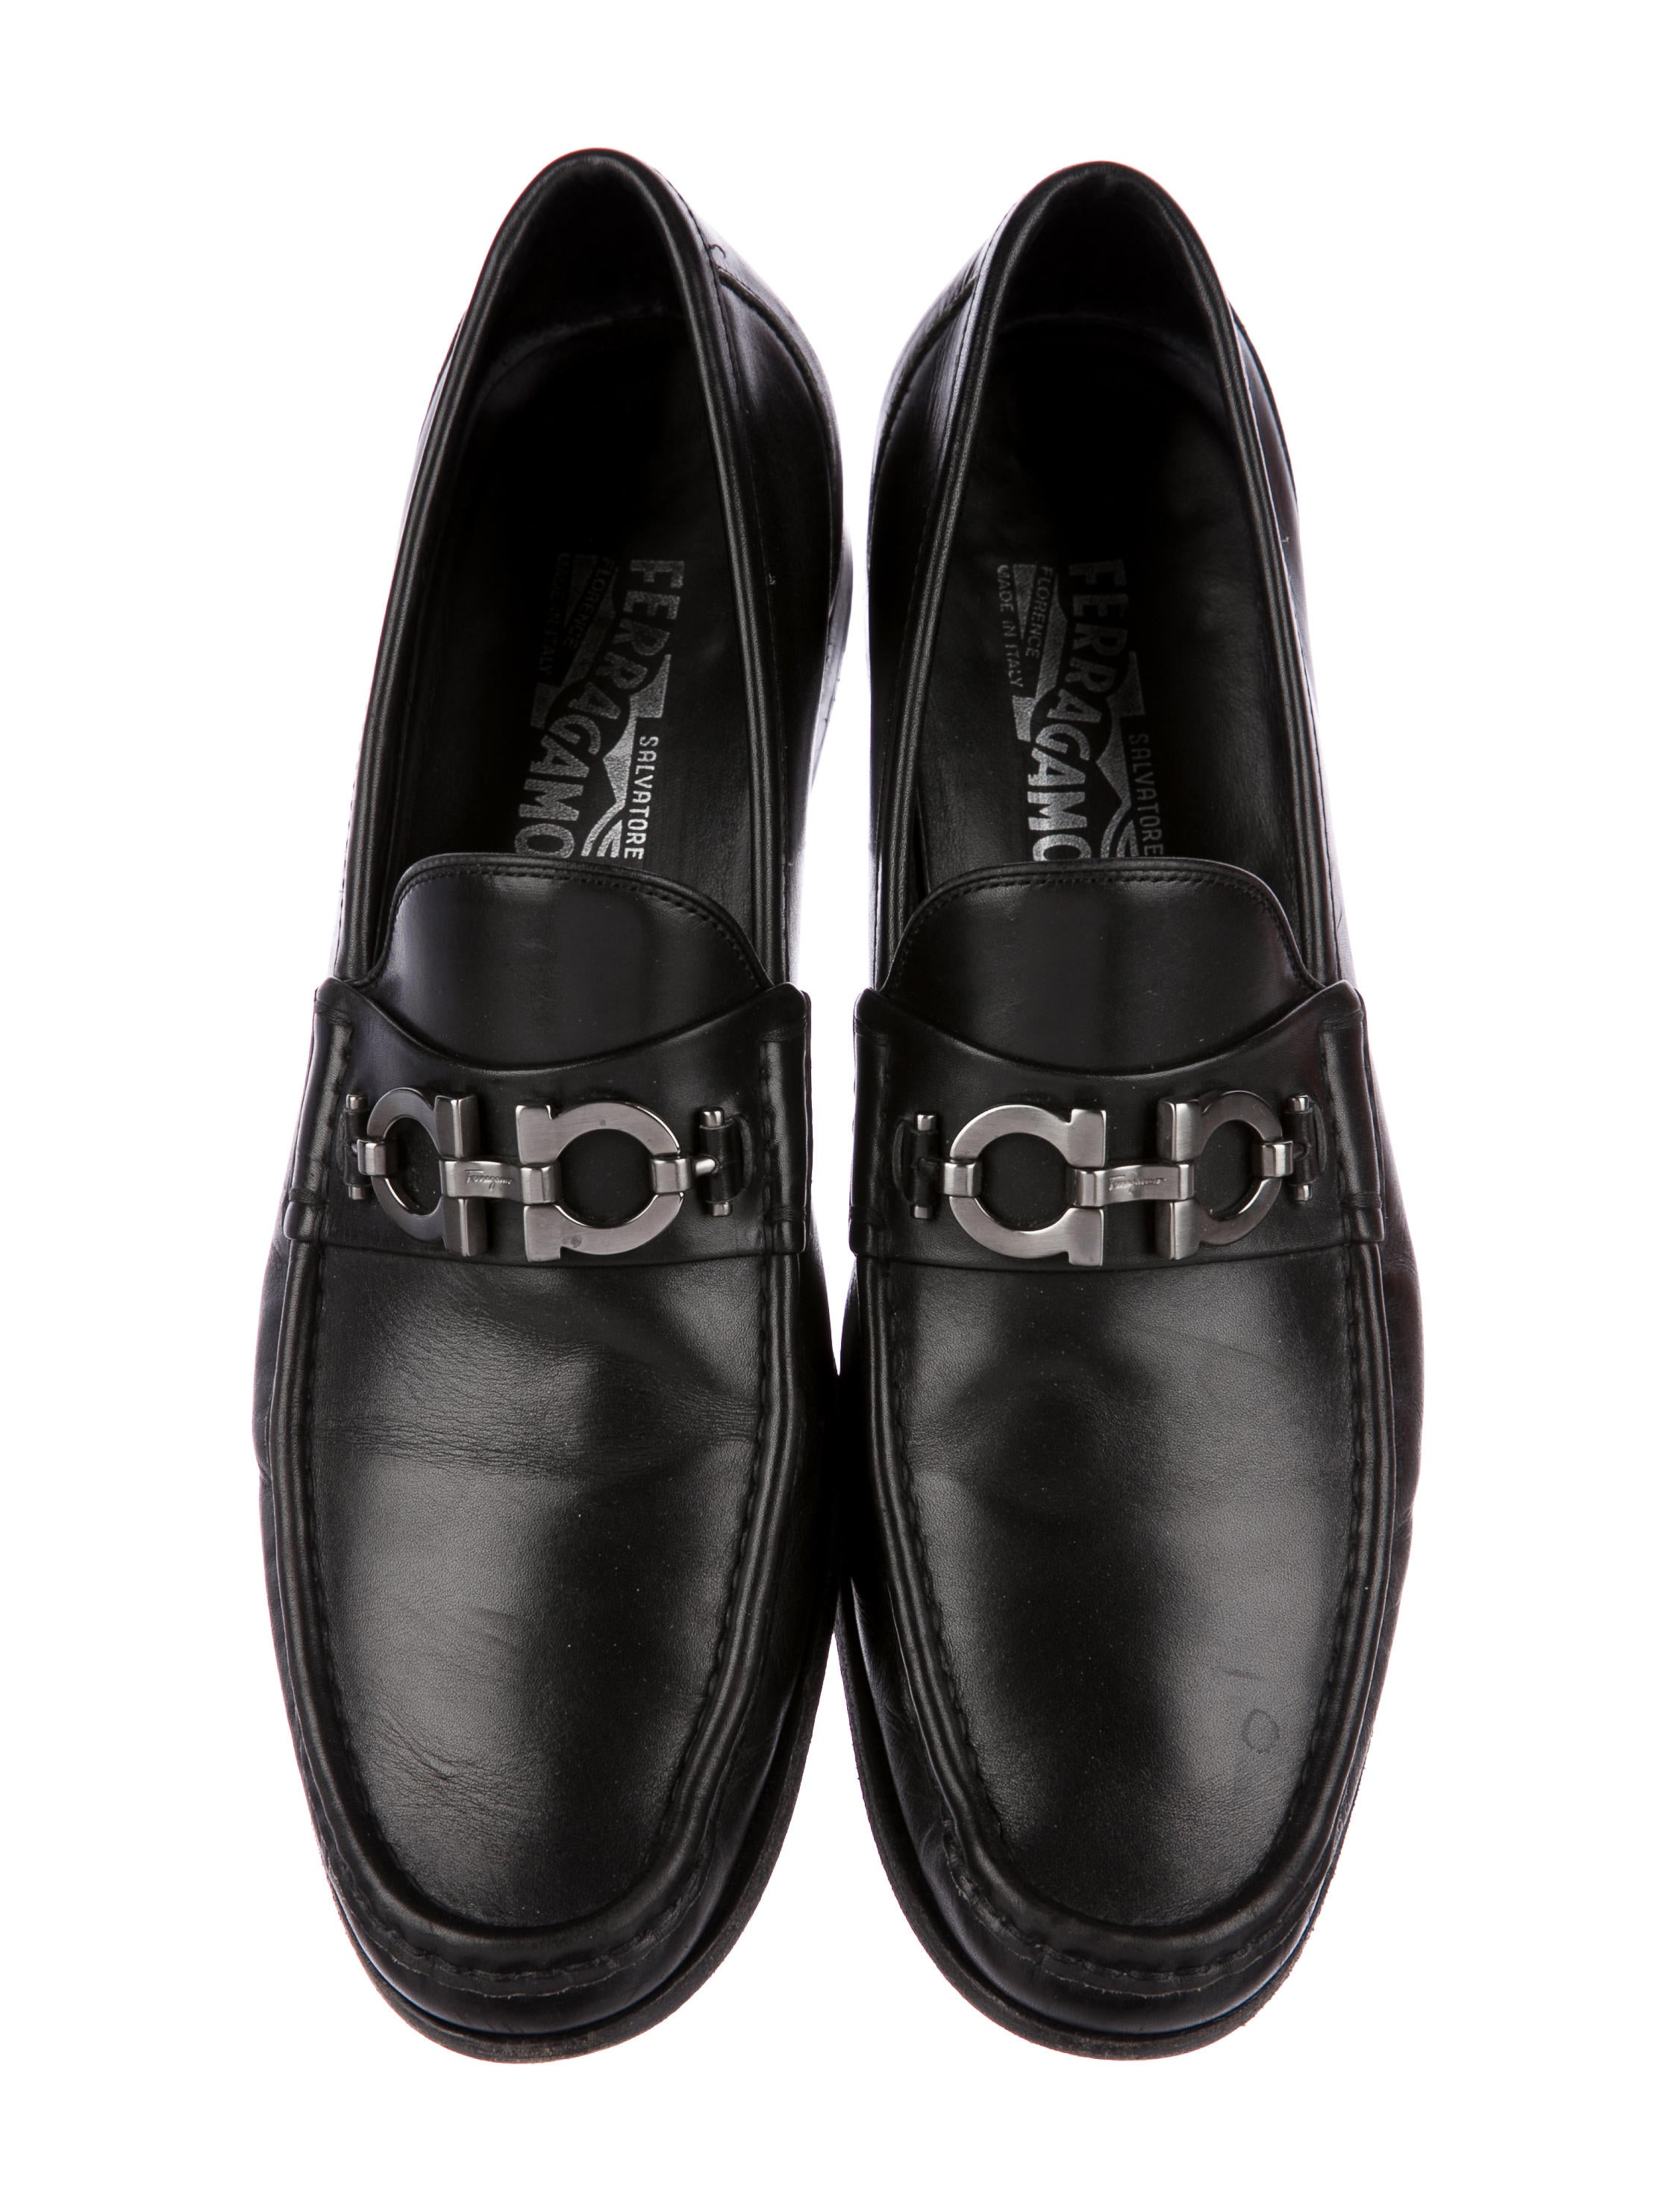 Salvatore Ferragamo Gancini Leather Loafers - Mens Shoes ...